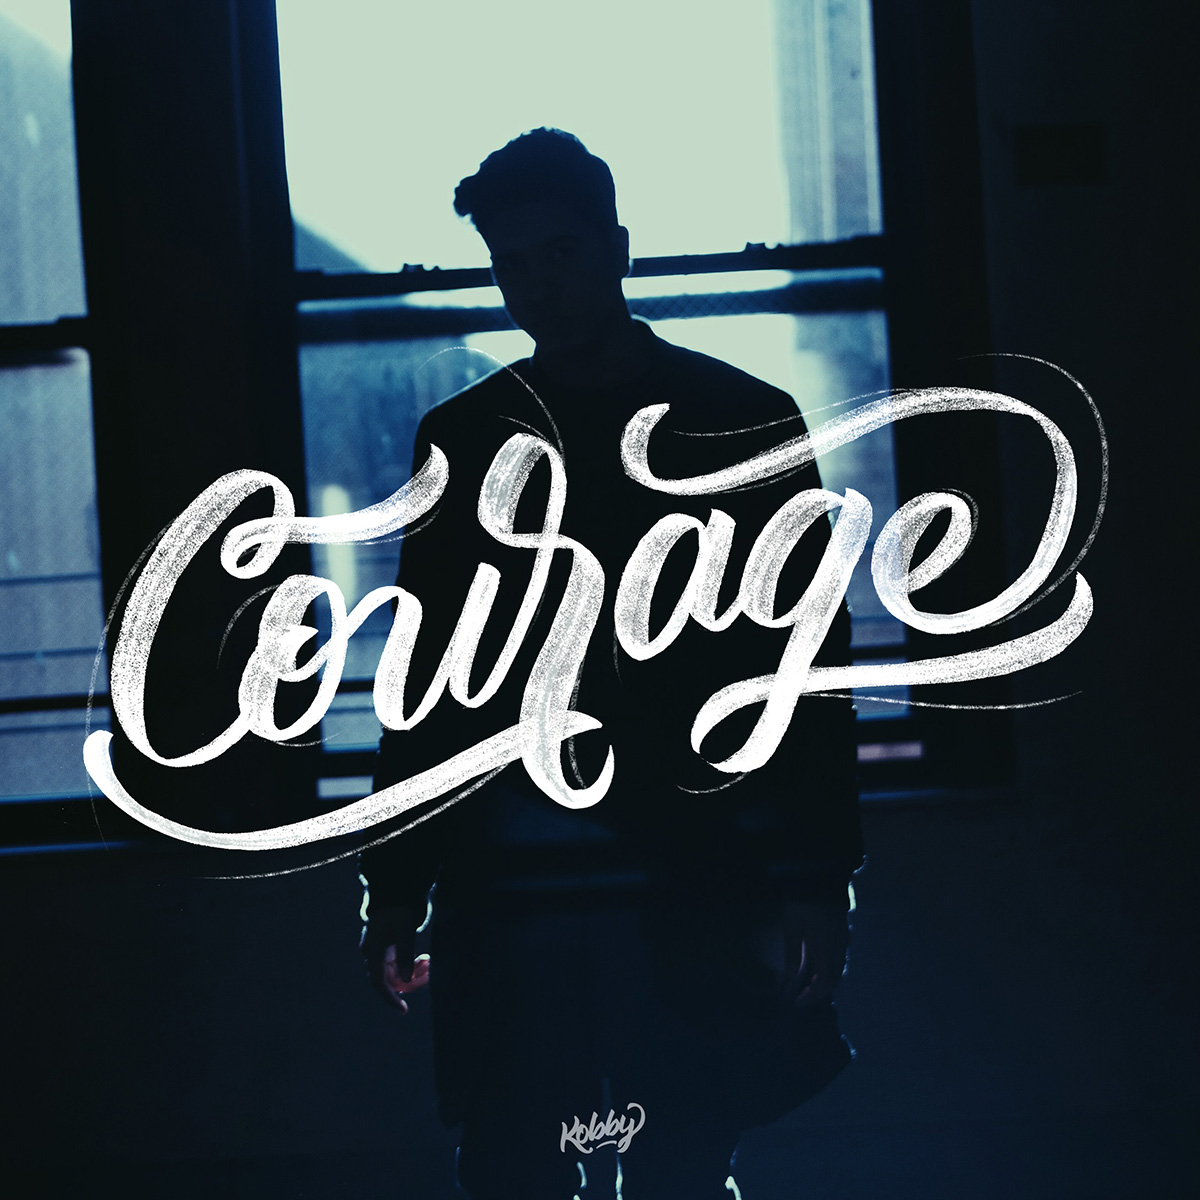 Courage lettering